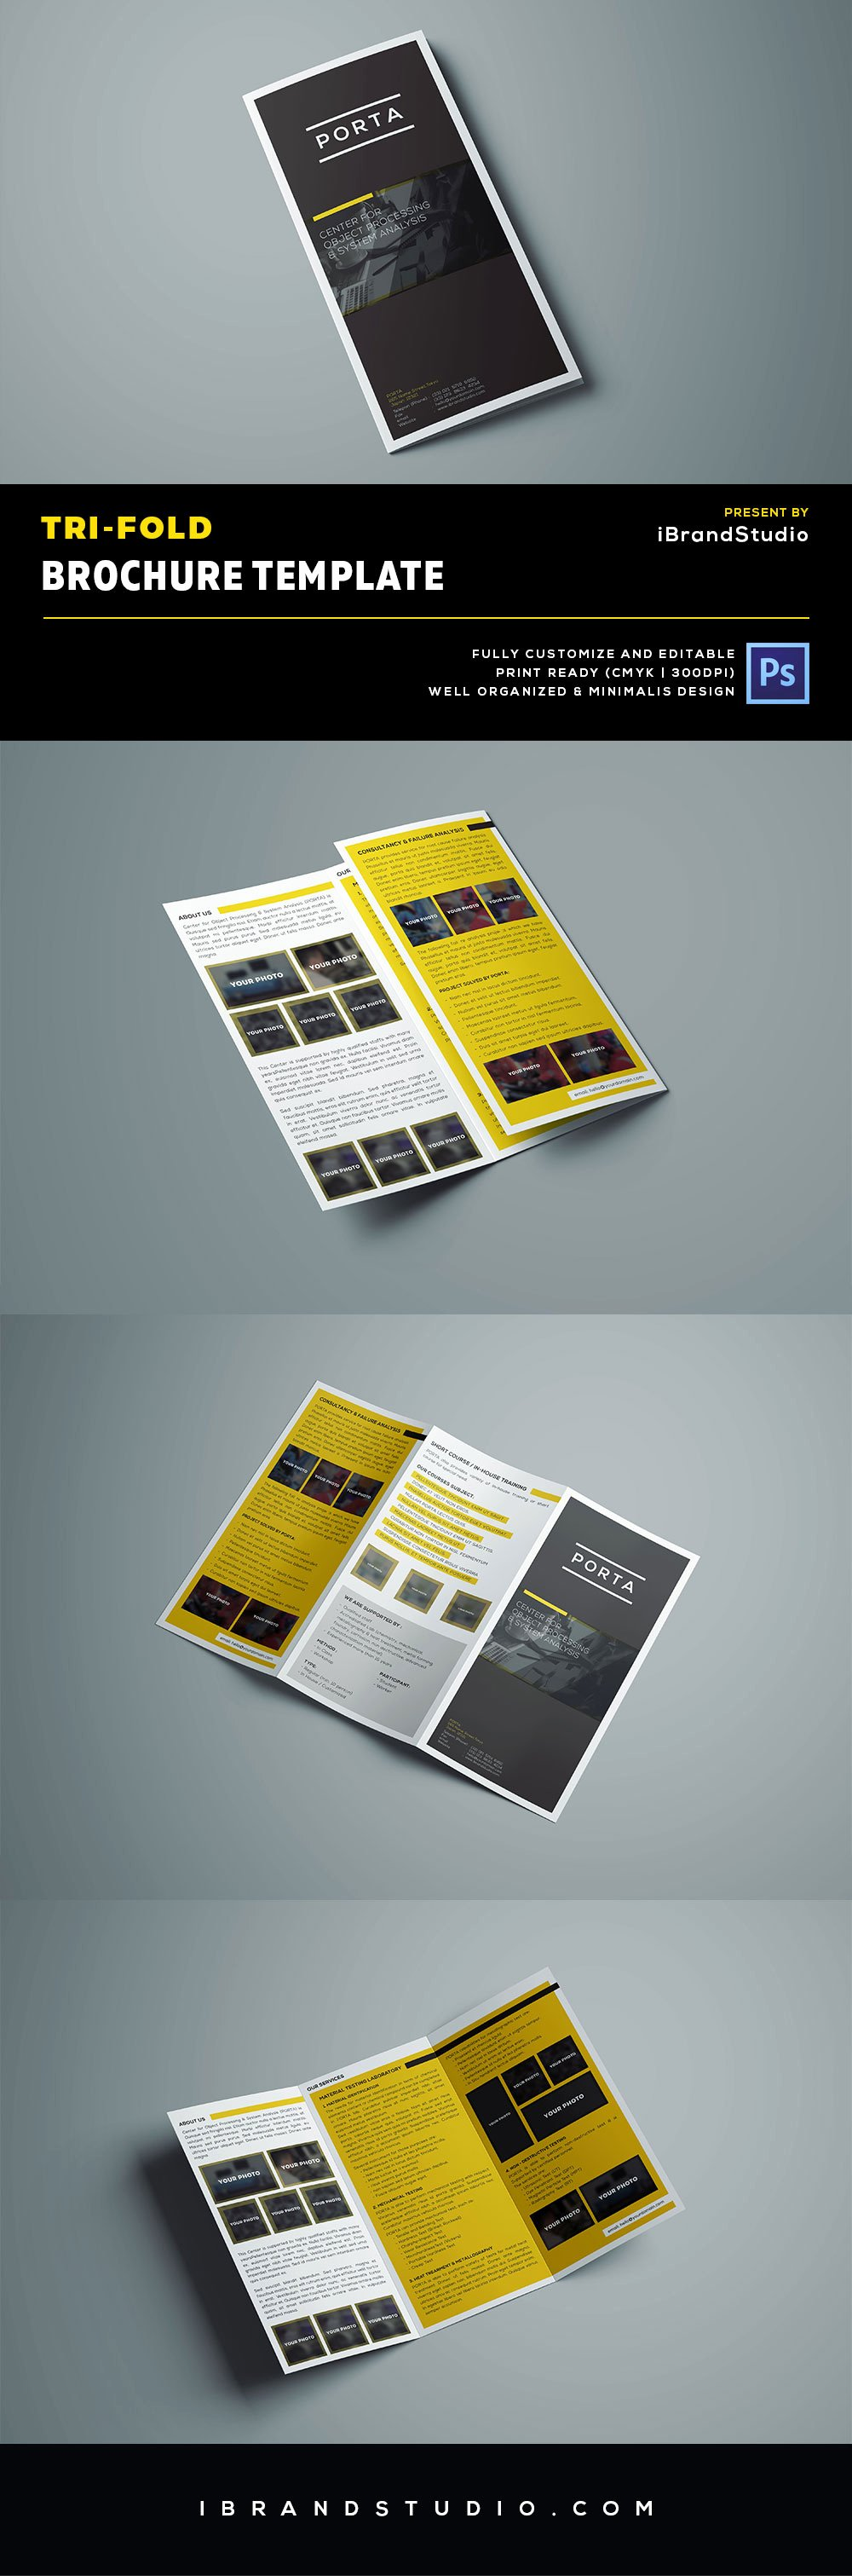 Free Tri Fold Brochure Template Psd Ideal for event or